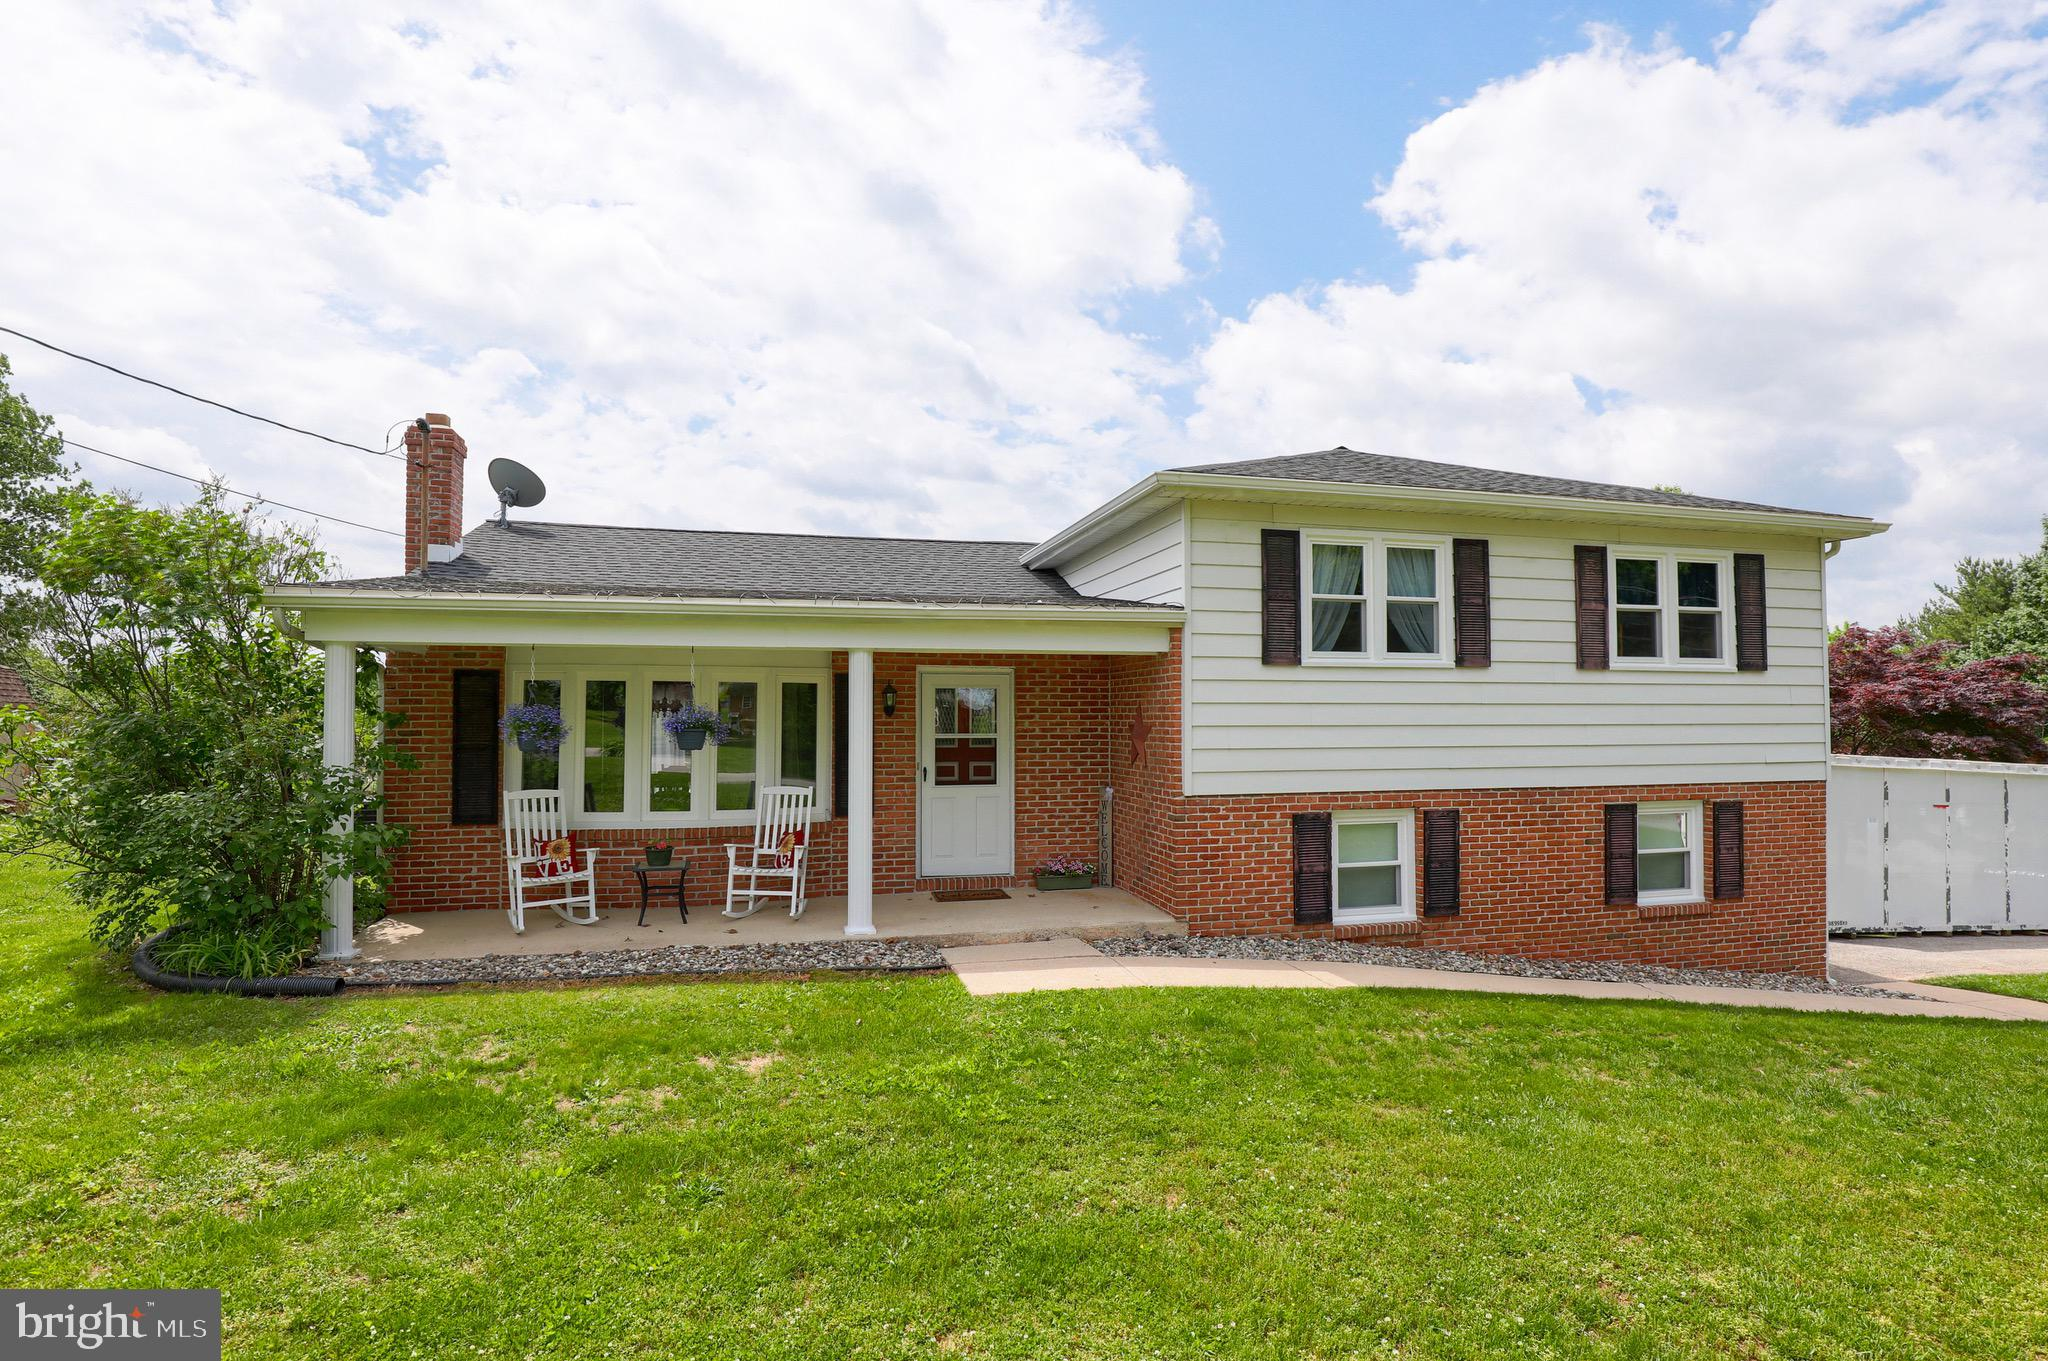 439 VALLEY ROAD, YORK, PA 17407